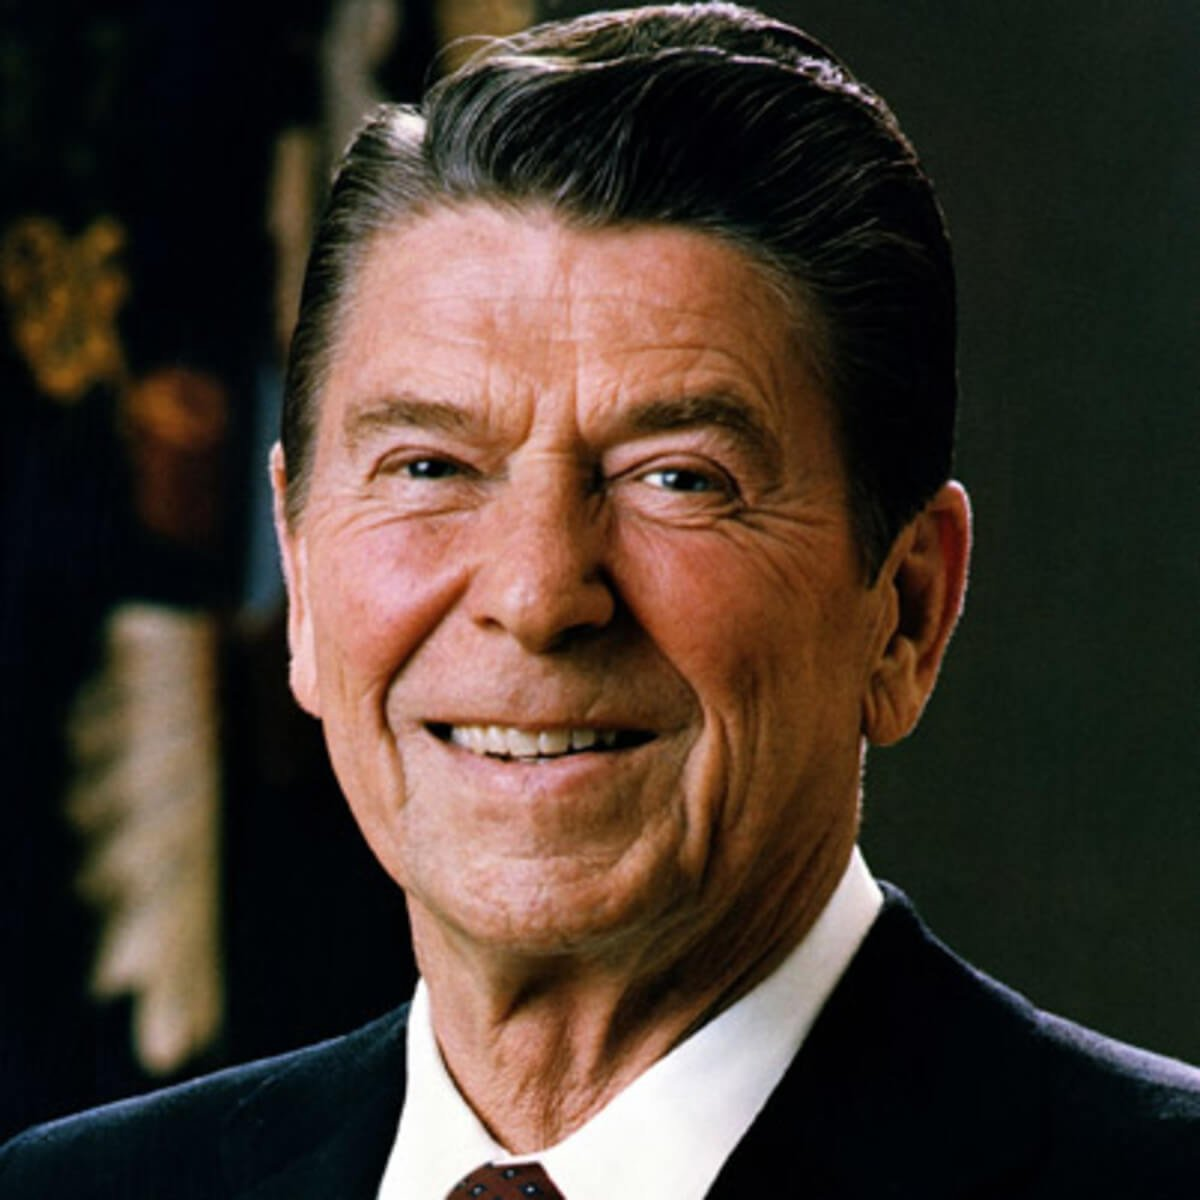 Ronald Reagan Juvenile Hairline